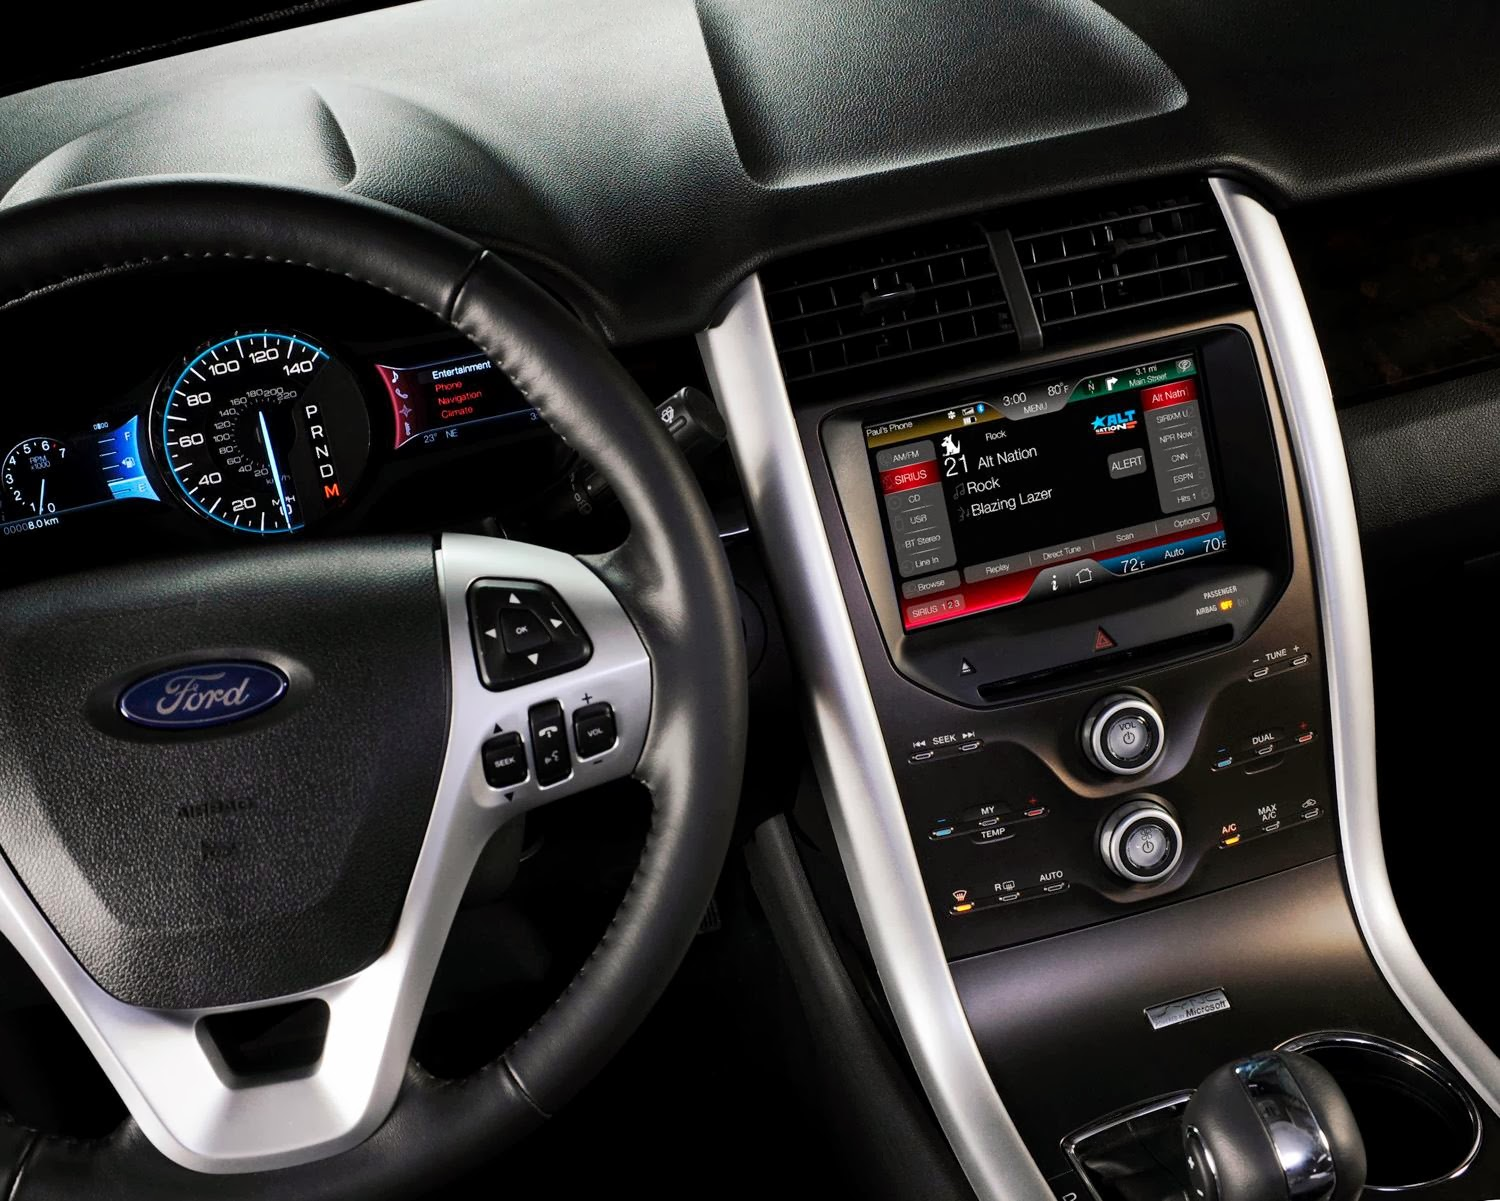 Ford to ditch microsoft sync technology for blackberry qnx sources say